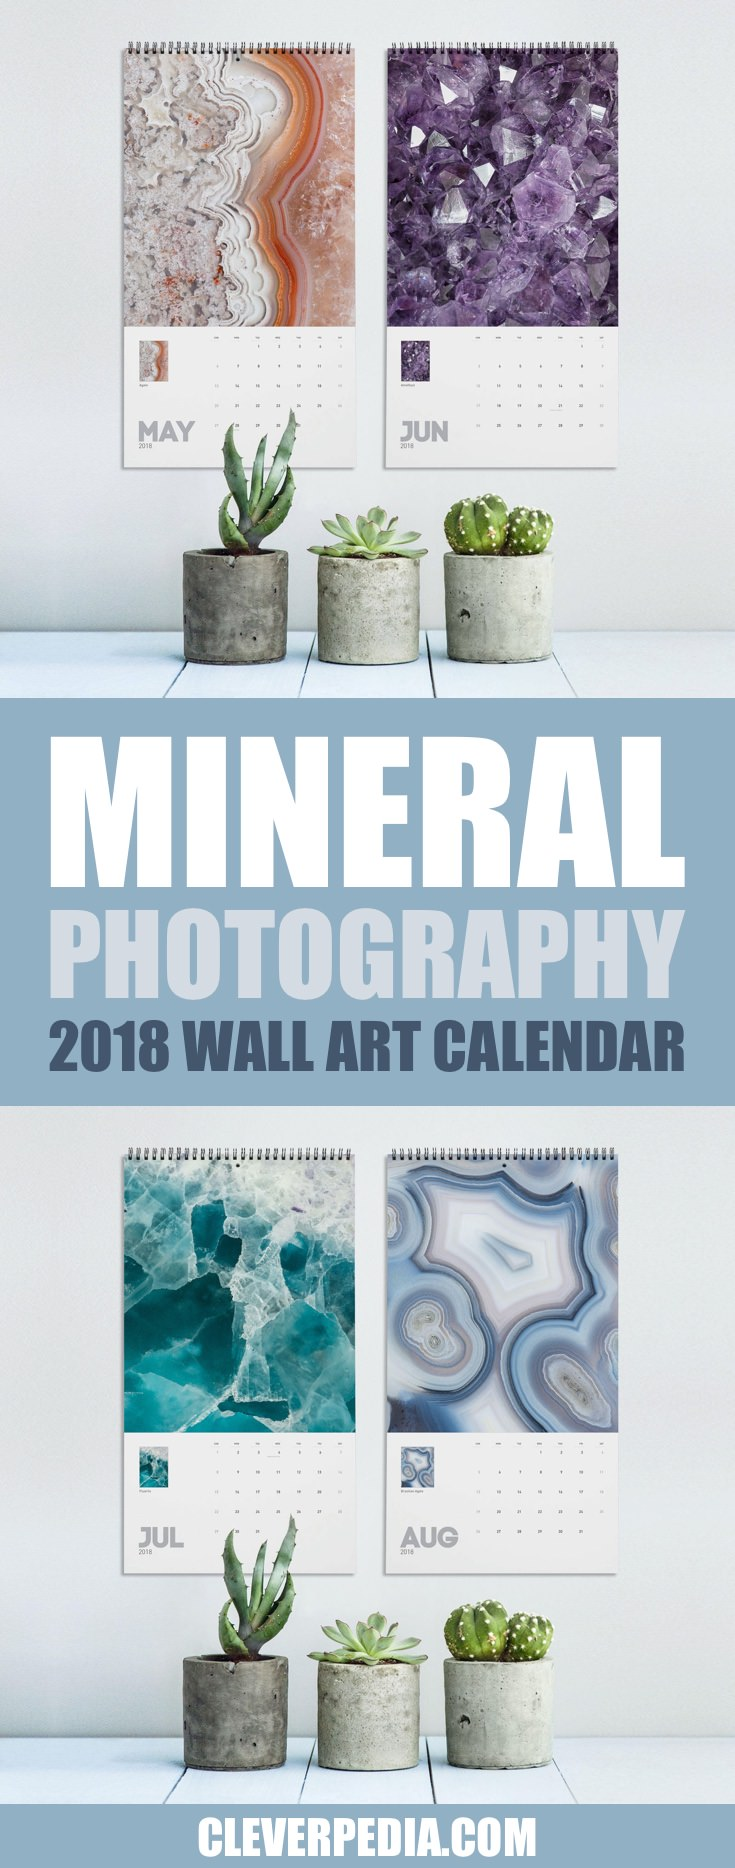 Crystals, geodes, and minerals are huge this year! This pretty 2018 wall calendar includes a dozen macro photographs of minerals, along with a grid of calendar dates. The calendar is wire-bound with a hole punched at the top. The Macro Mineral Photography Wall Art Calendar is perfect for a friend who loves crystals.